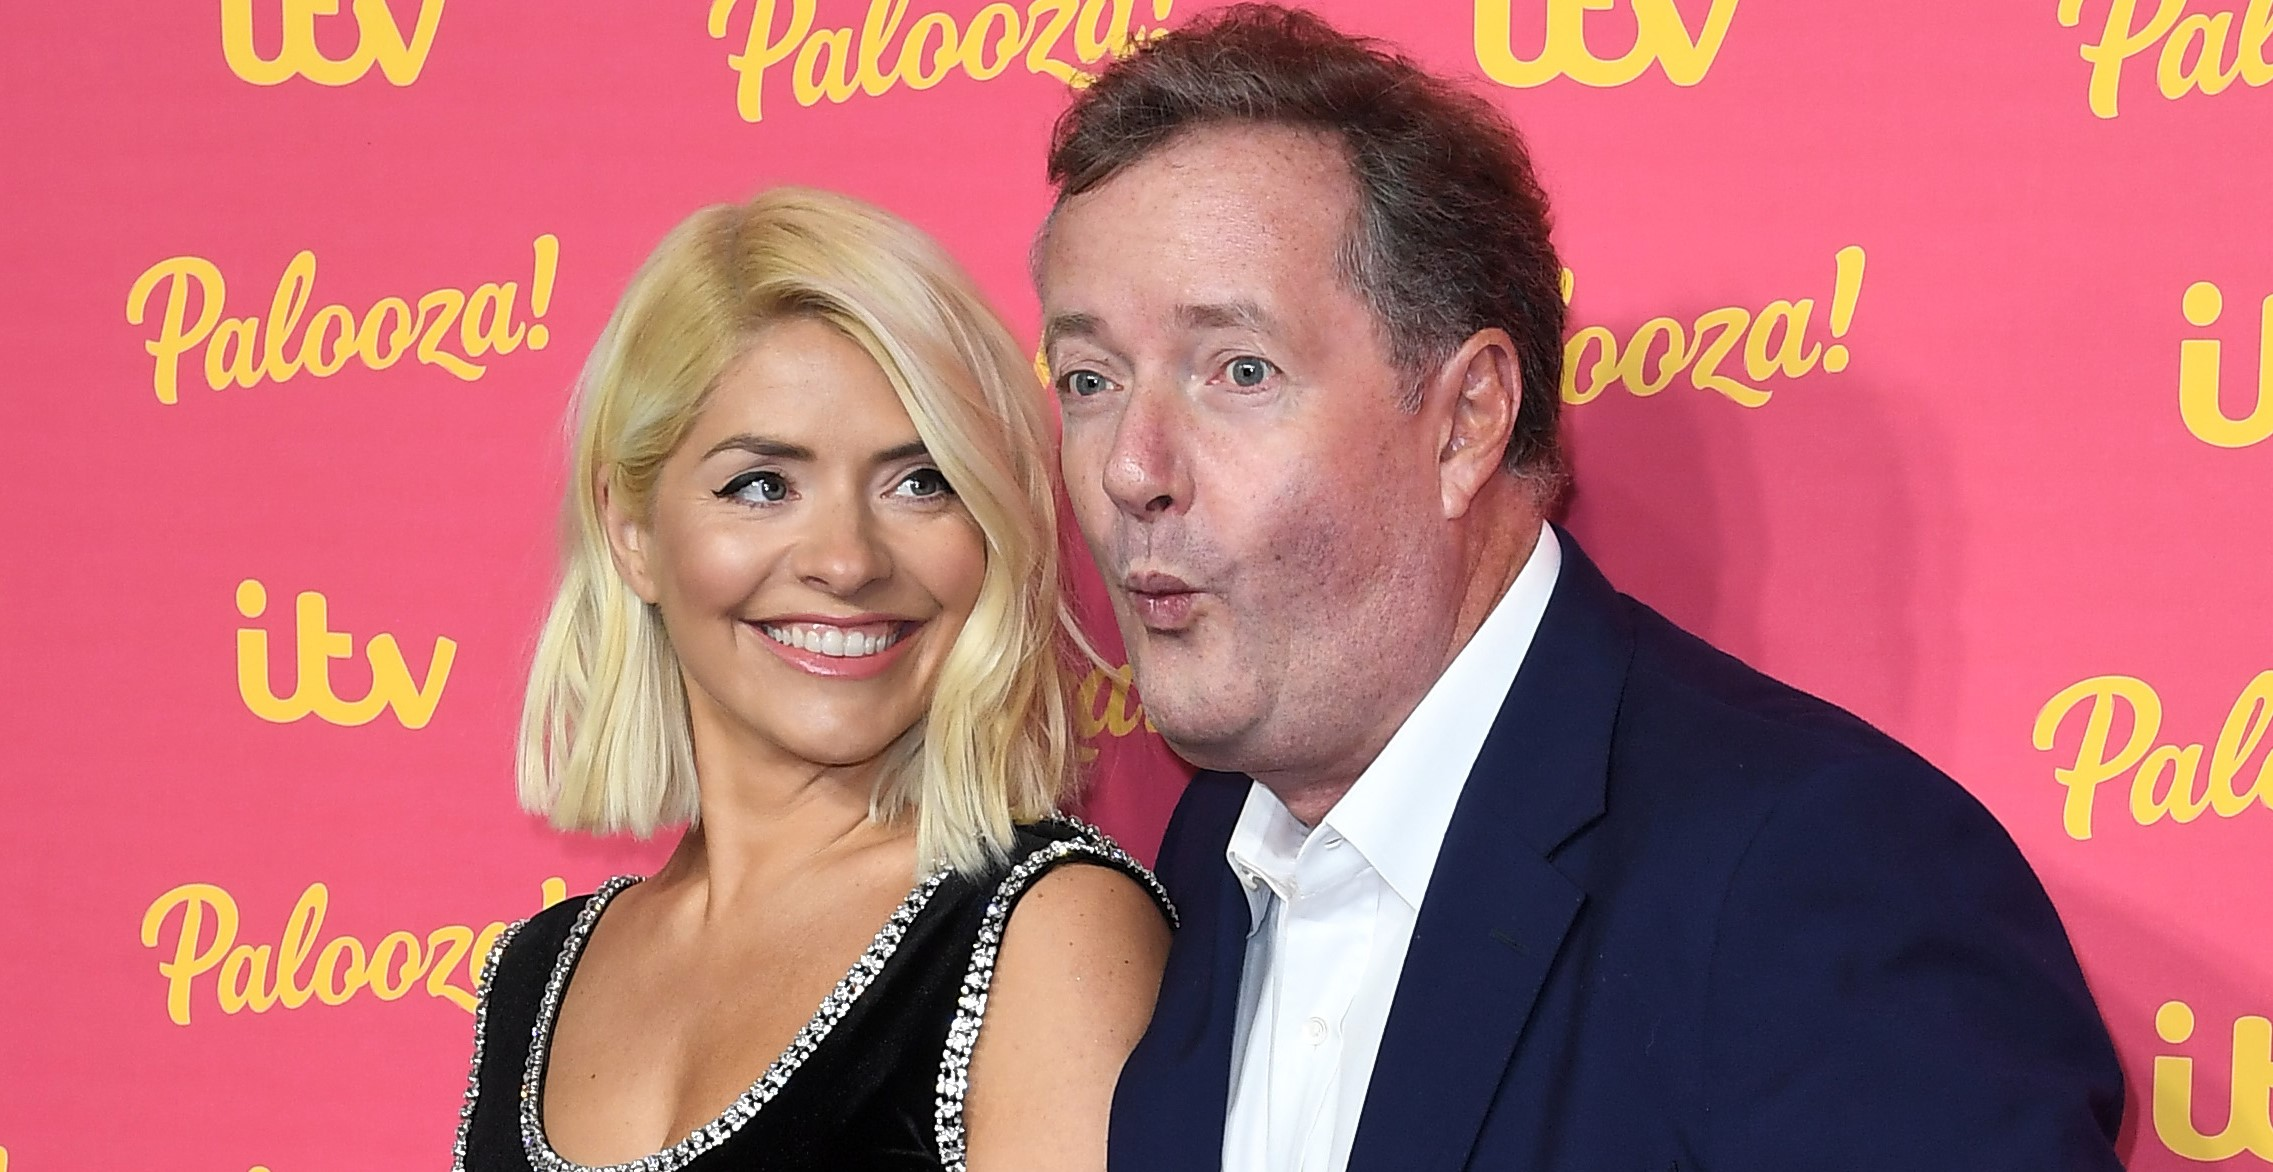 Holly Willoughby shoves Piers Morgan as he attempts to 'wreck' her red carpet moment